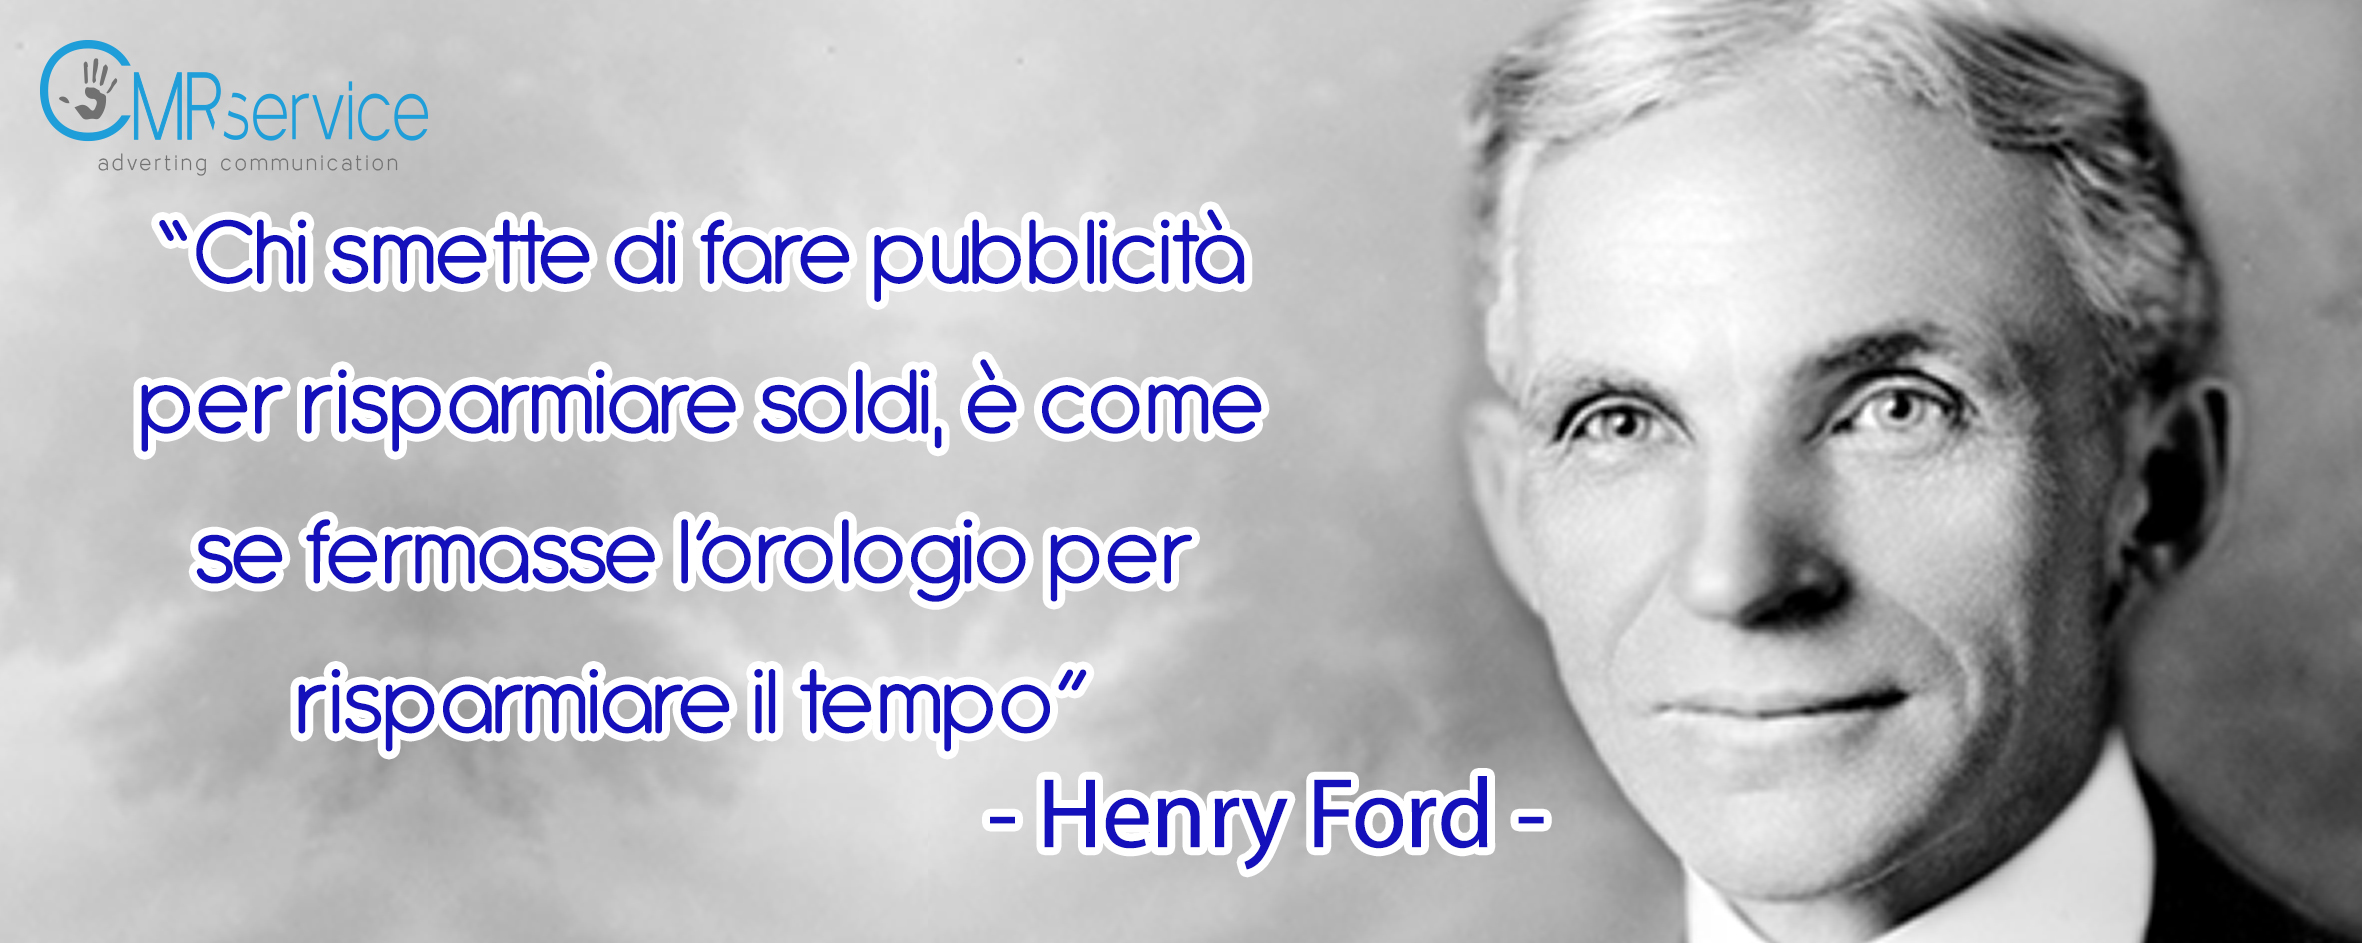 henry-ford-motto-2